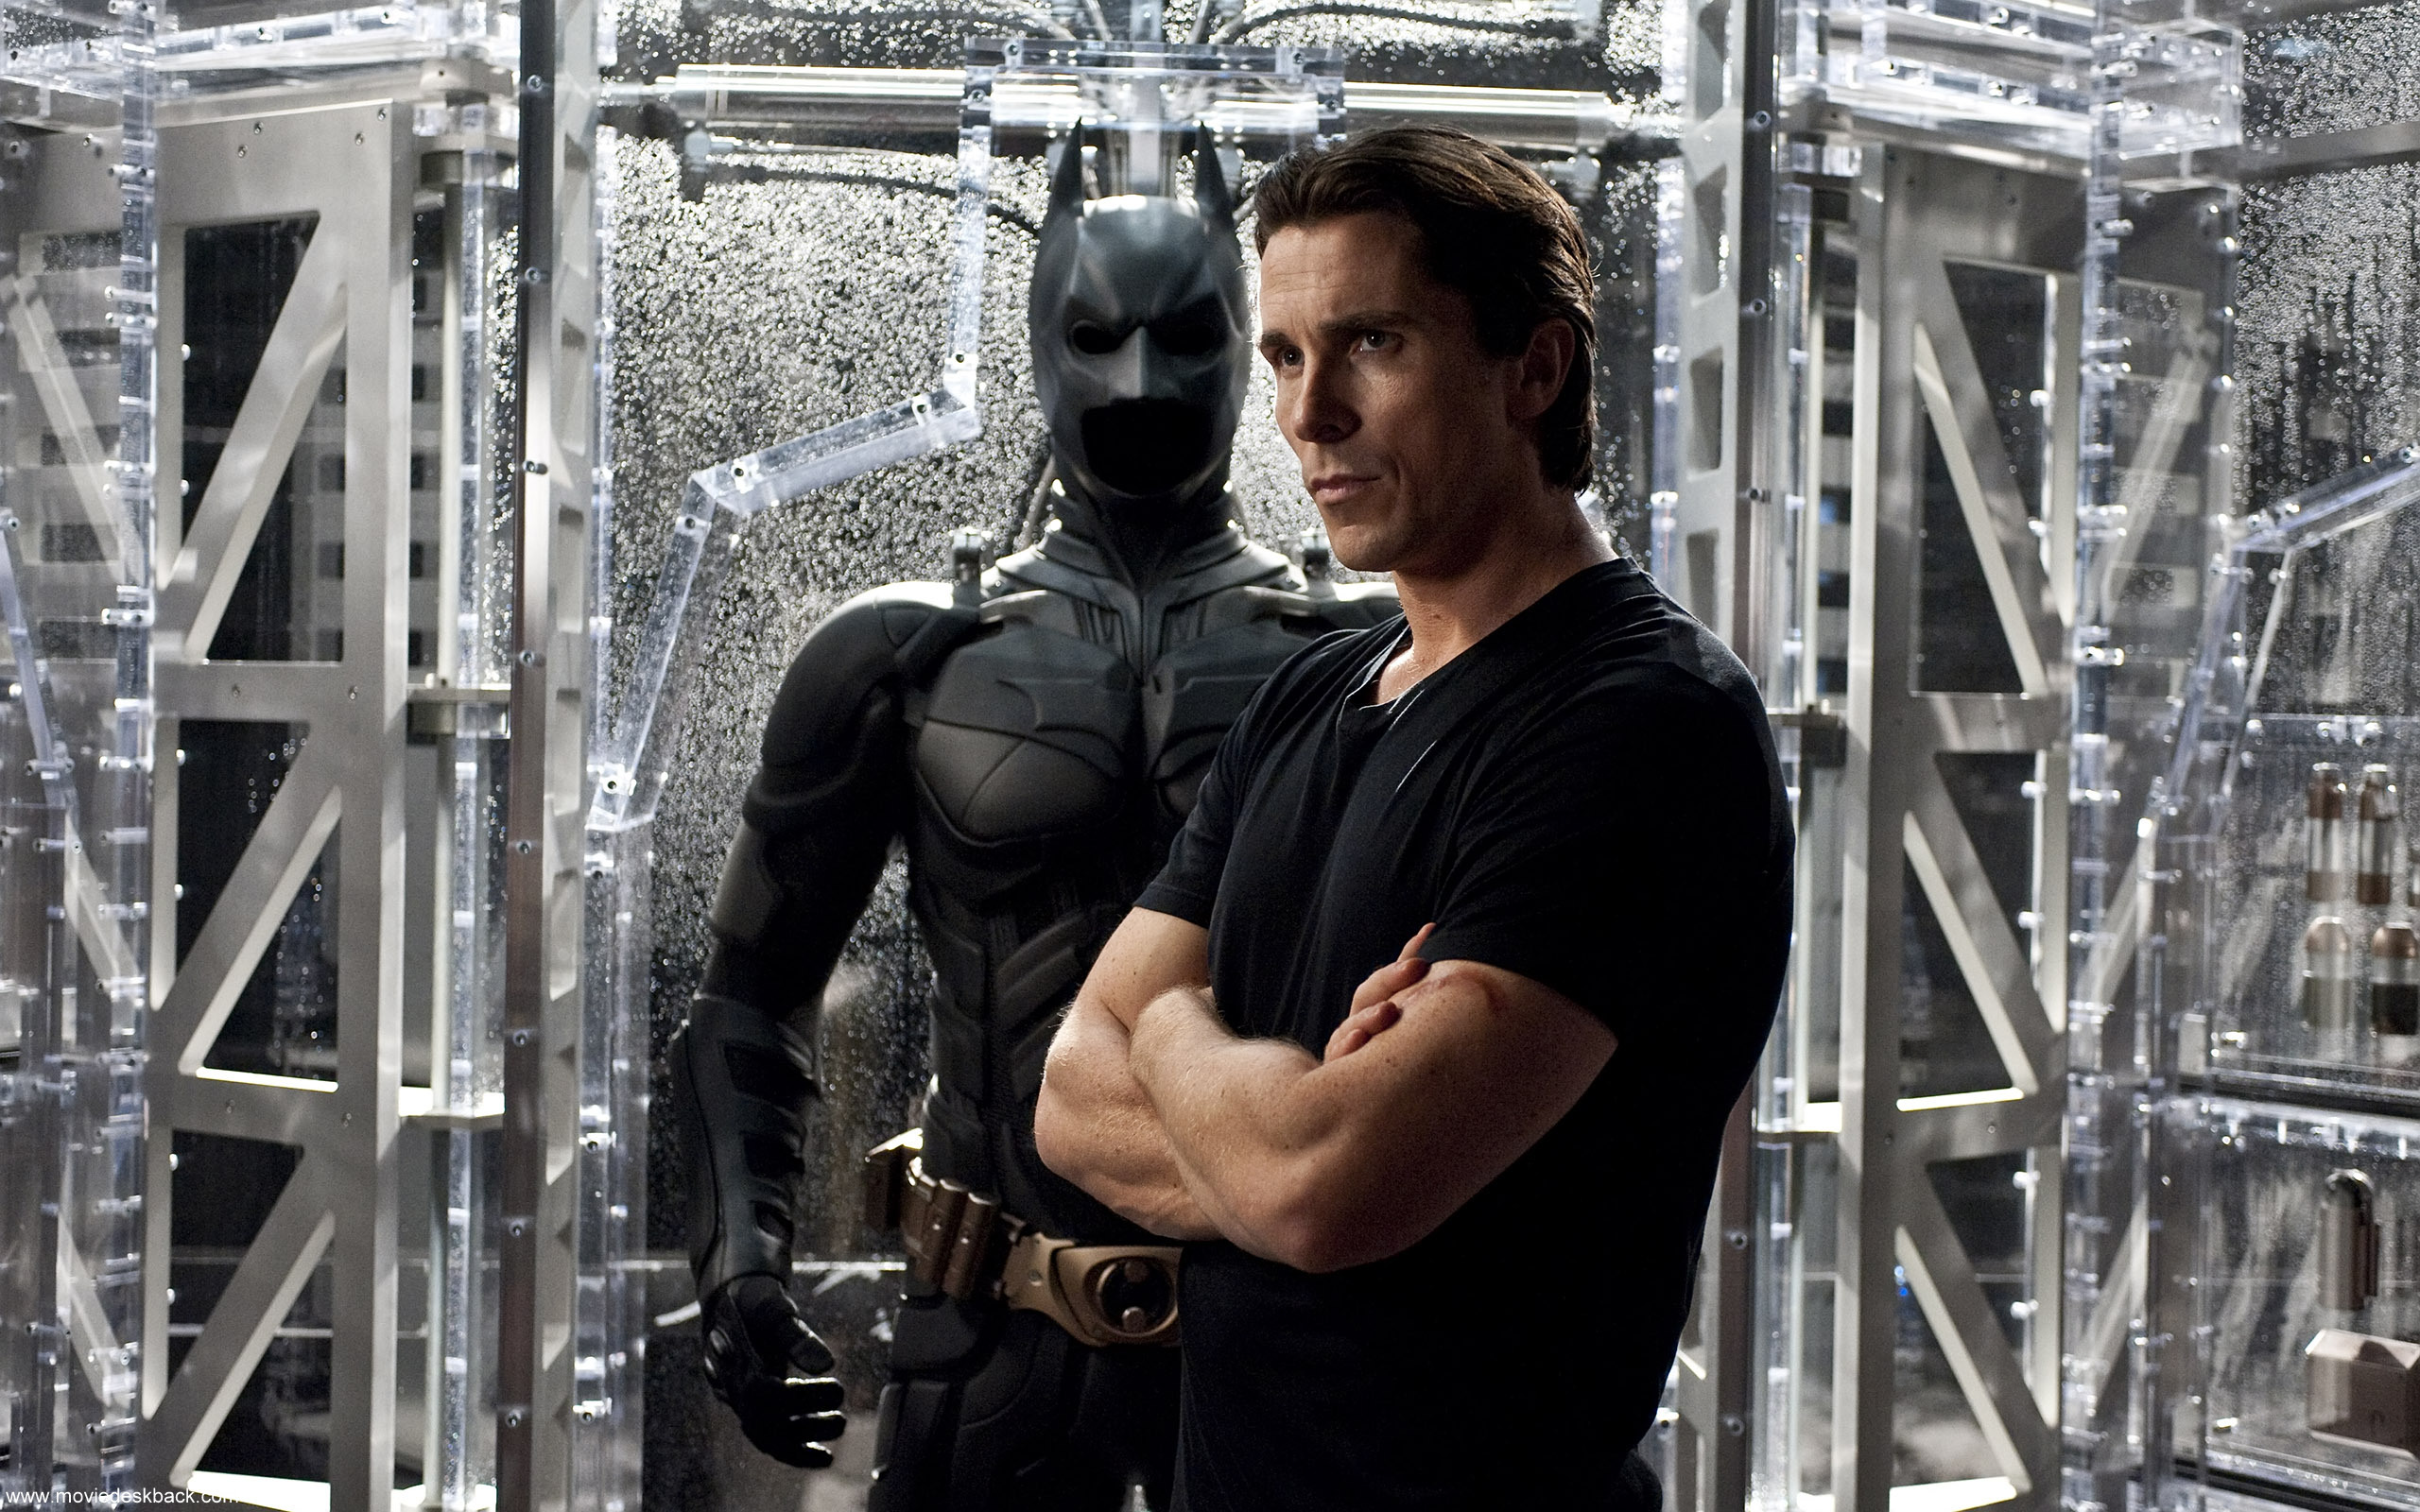 2560x1600 - Christian Bale Wallpapers 12